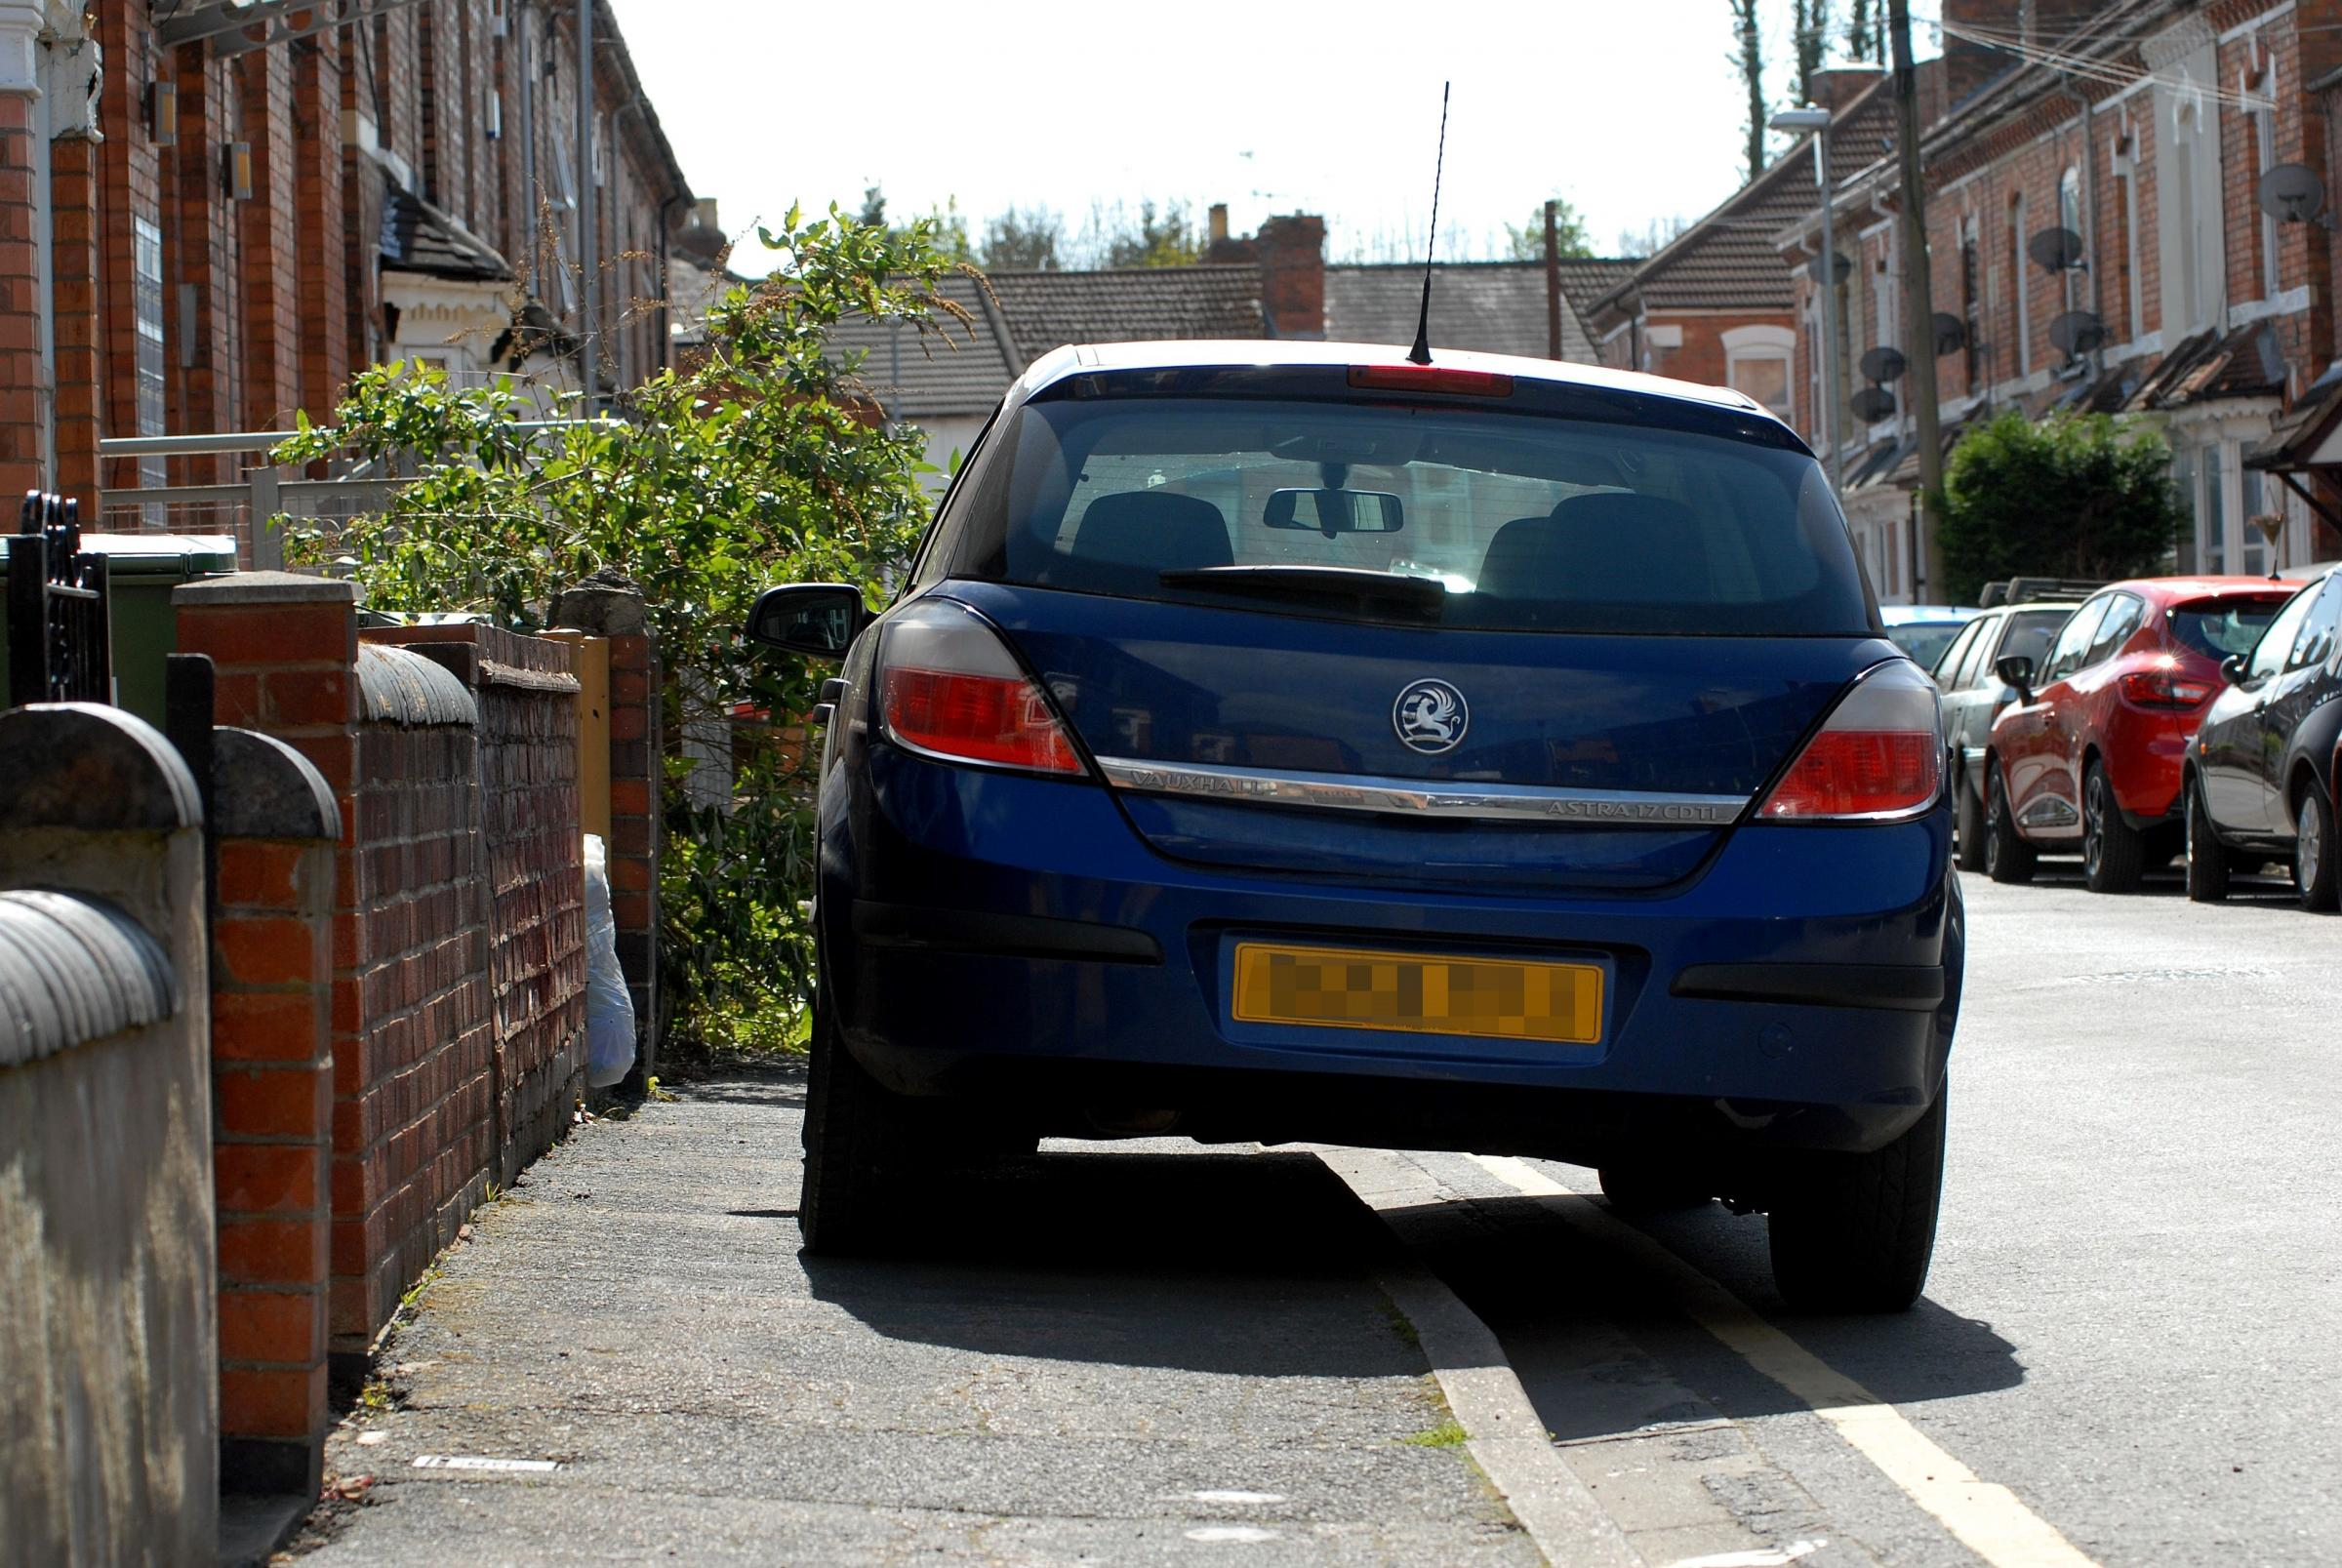 NUISANCE: It's time to end parking on pavements, says Kate Hignett